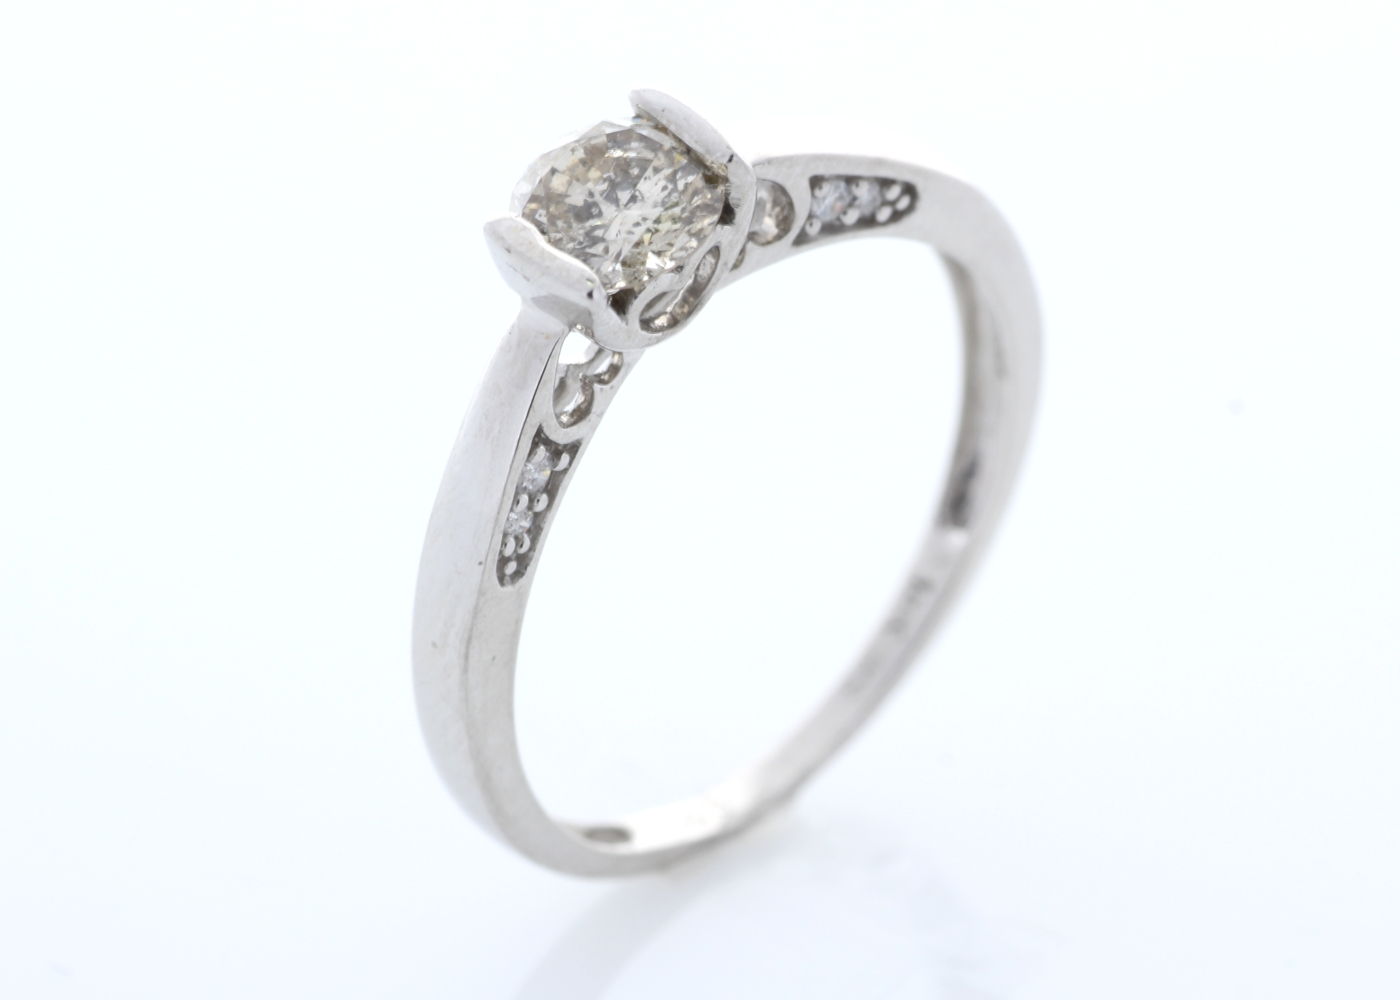 18ct White Gold Single Stone Prong Set With Stone Set Shoulders Diamond Ring 0.60 Carats